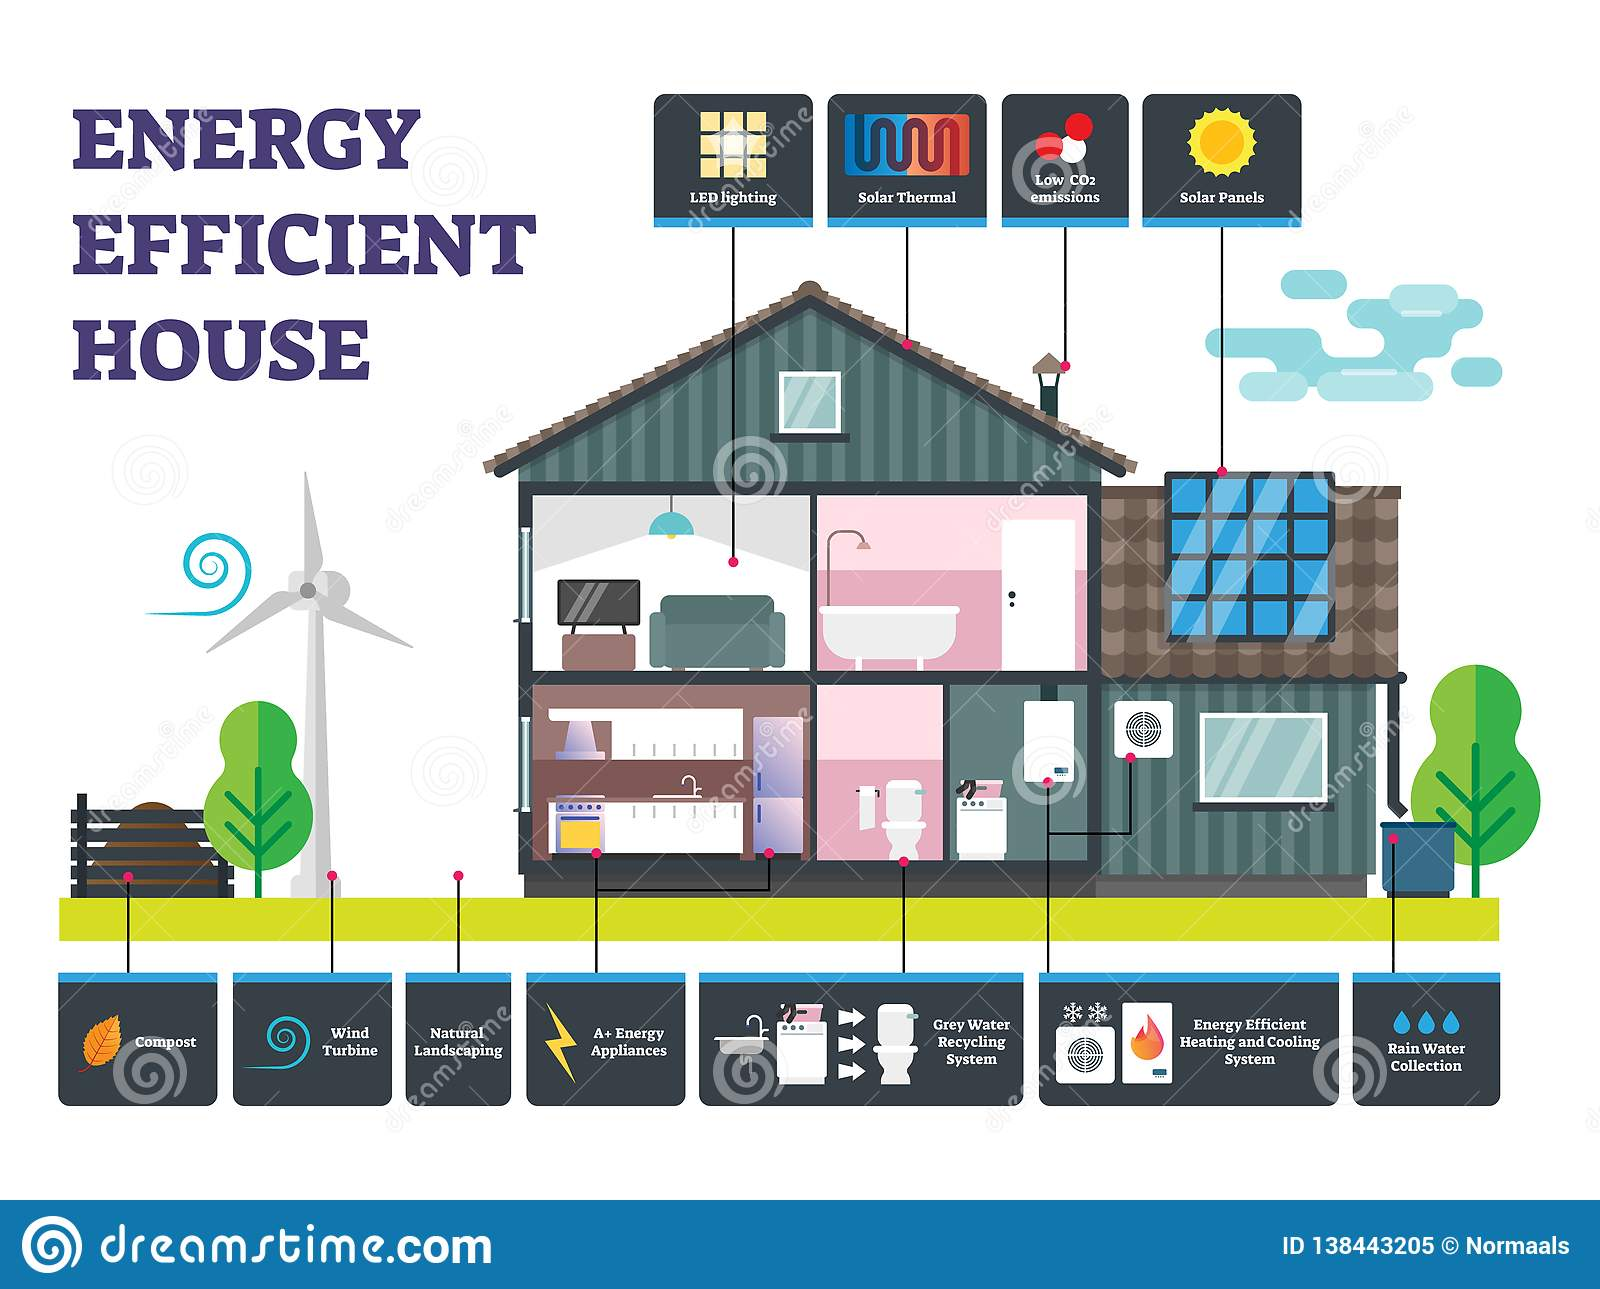 Energy efficient house vector illustration. Labeled sustainable building.